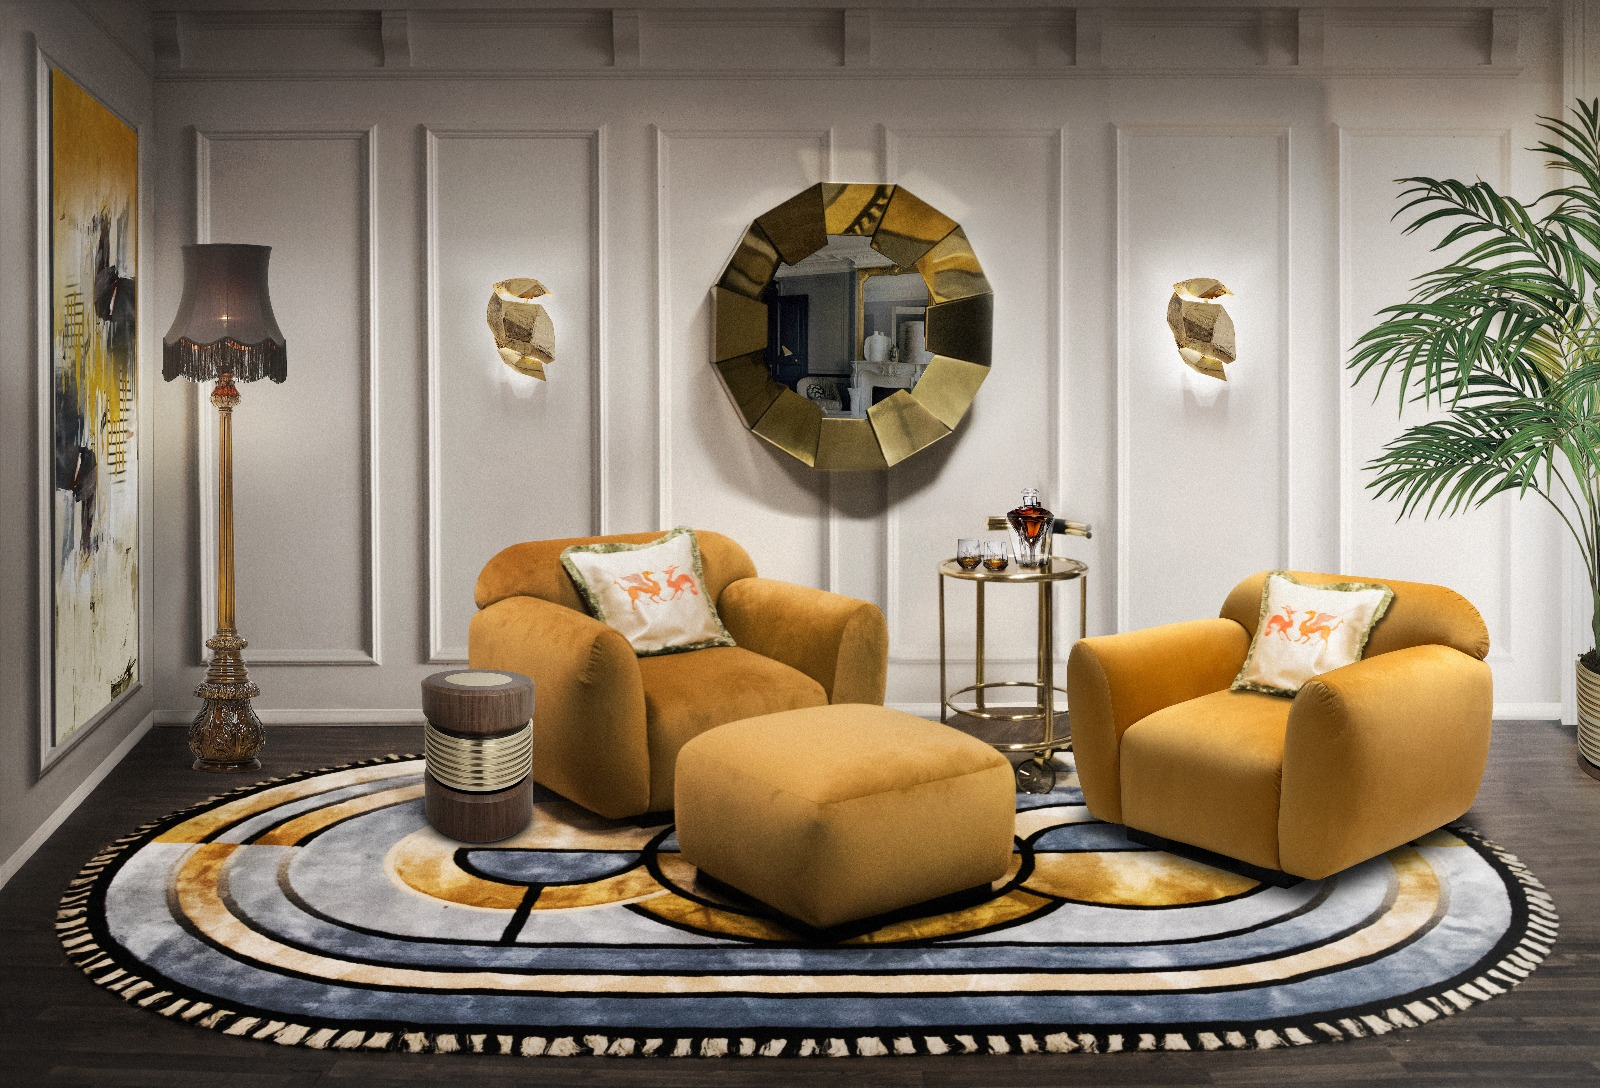 Lounge Rugs- The Essential Elements of Interior Design